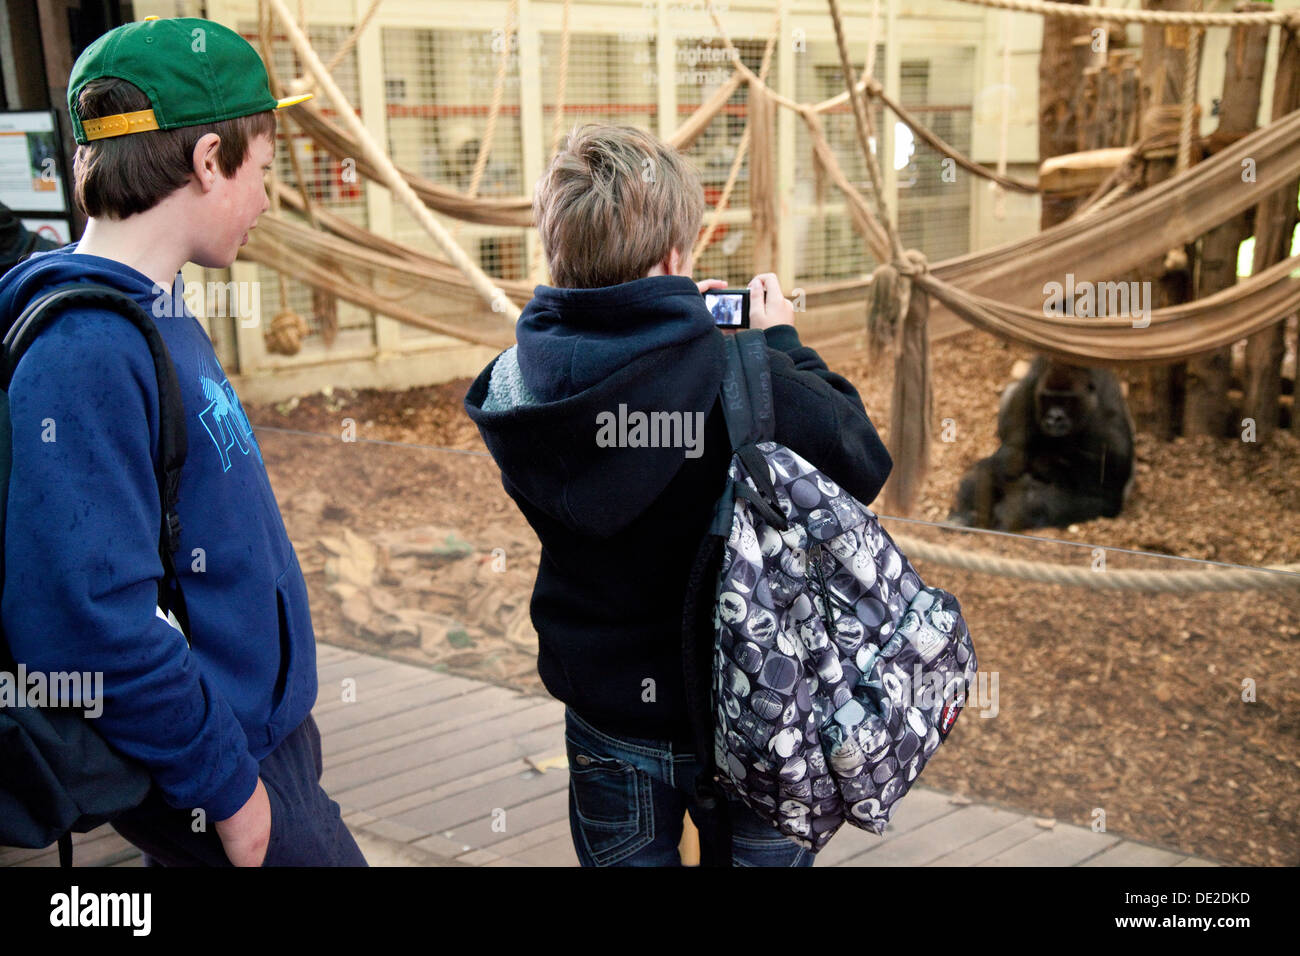 London Zoo, two children looking at a gorilla, London Zoo, Regents Park, England UK Stock Photo